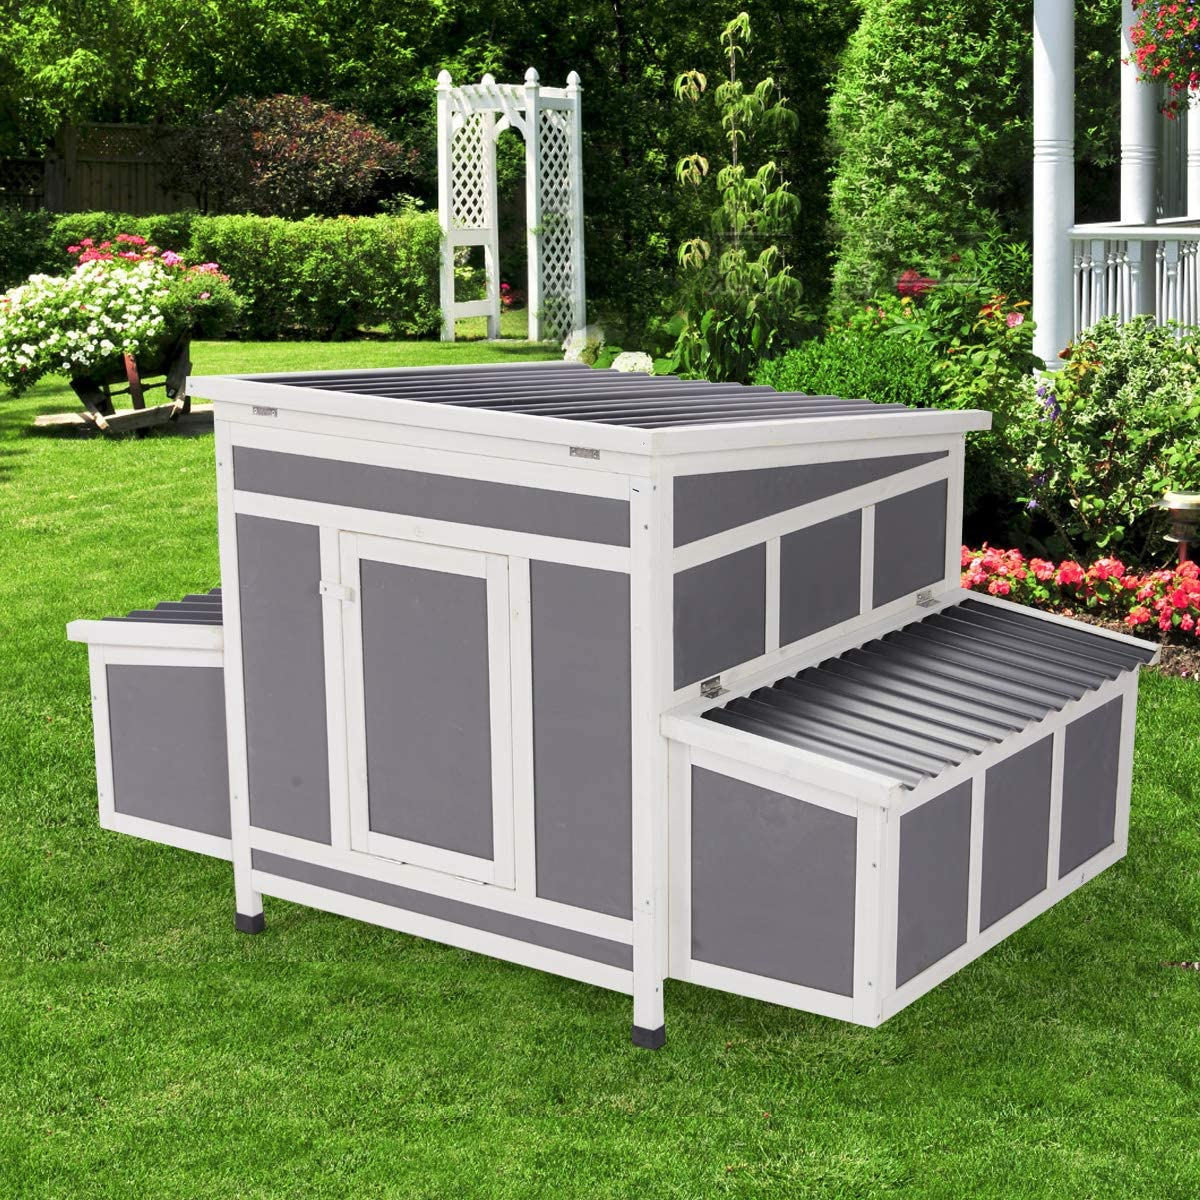 Large Chicken Coop review